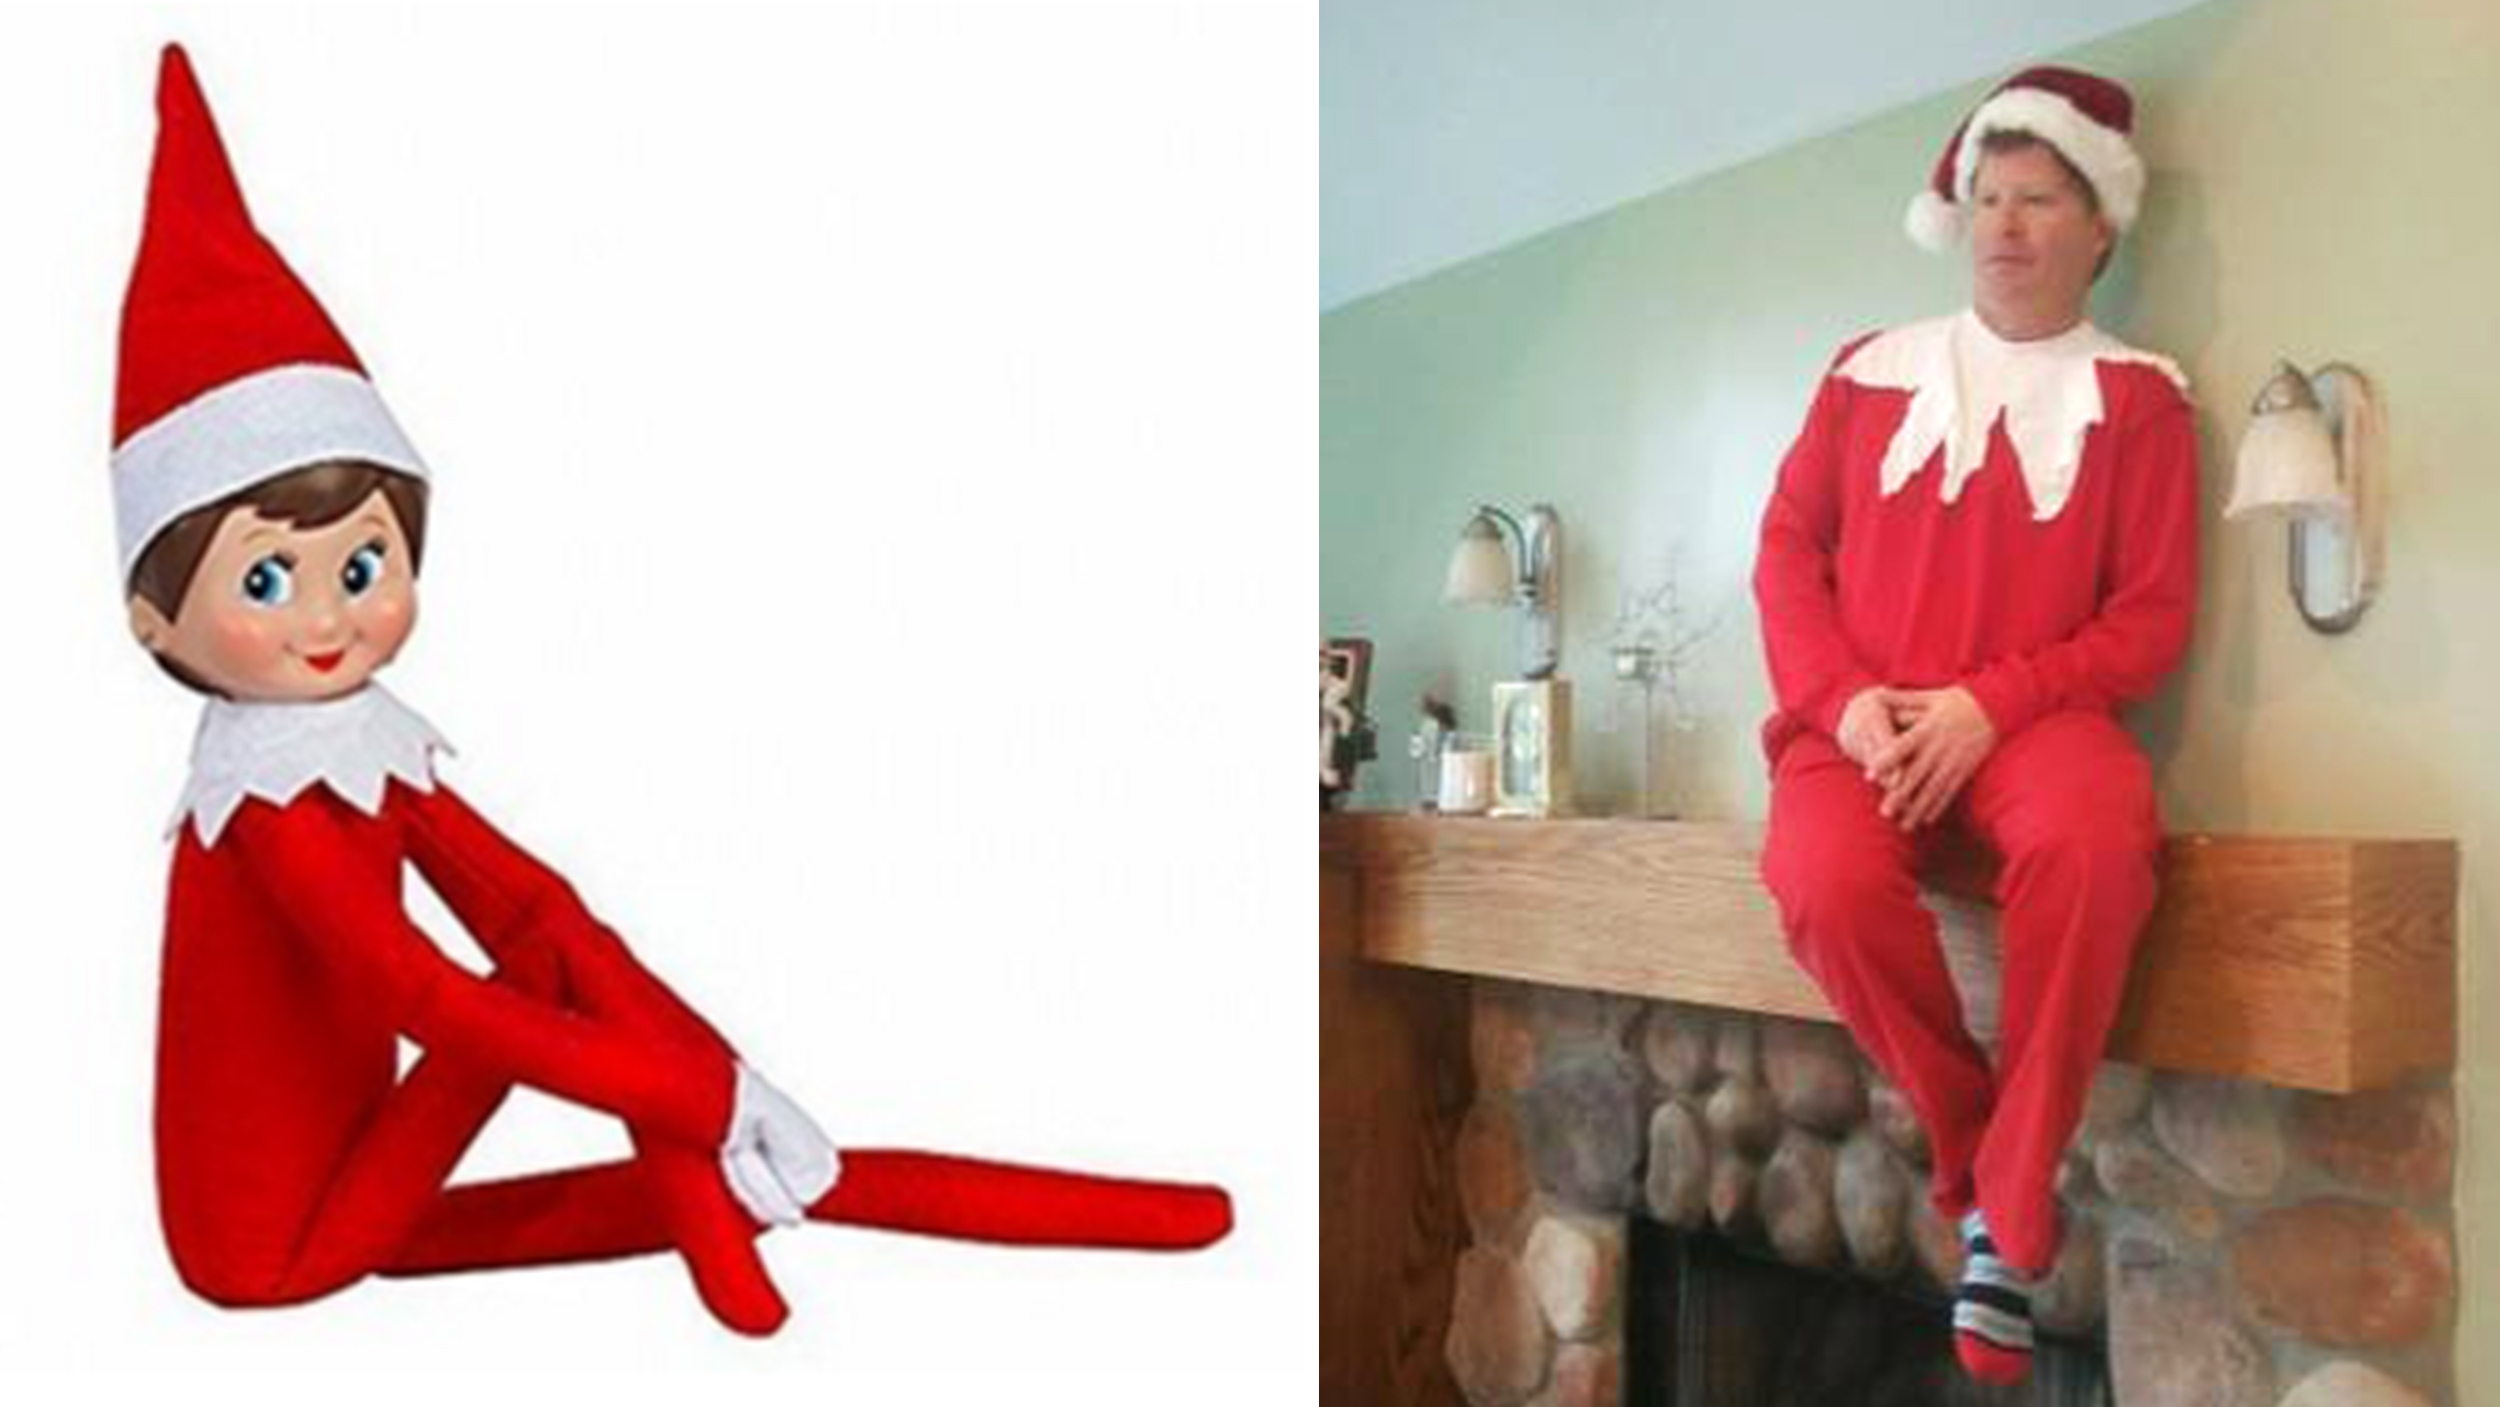 Boston man offers to pose as living elf on the shelf in - Christmas elf on the shelf wallpaper ...